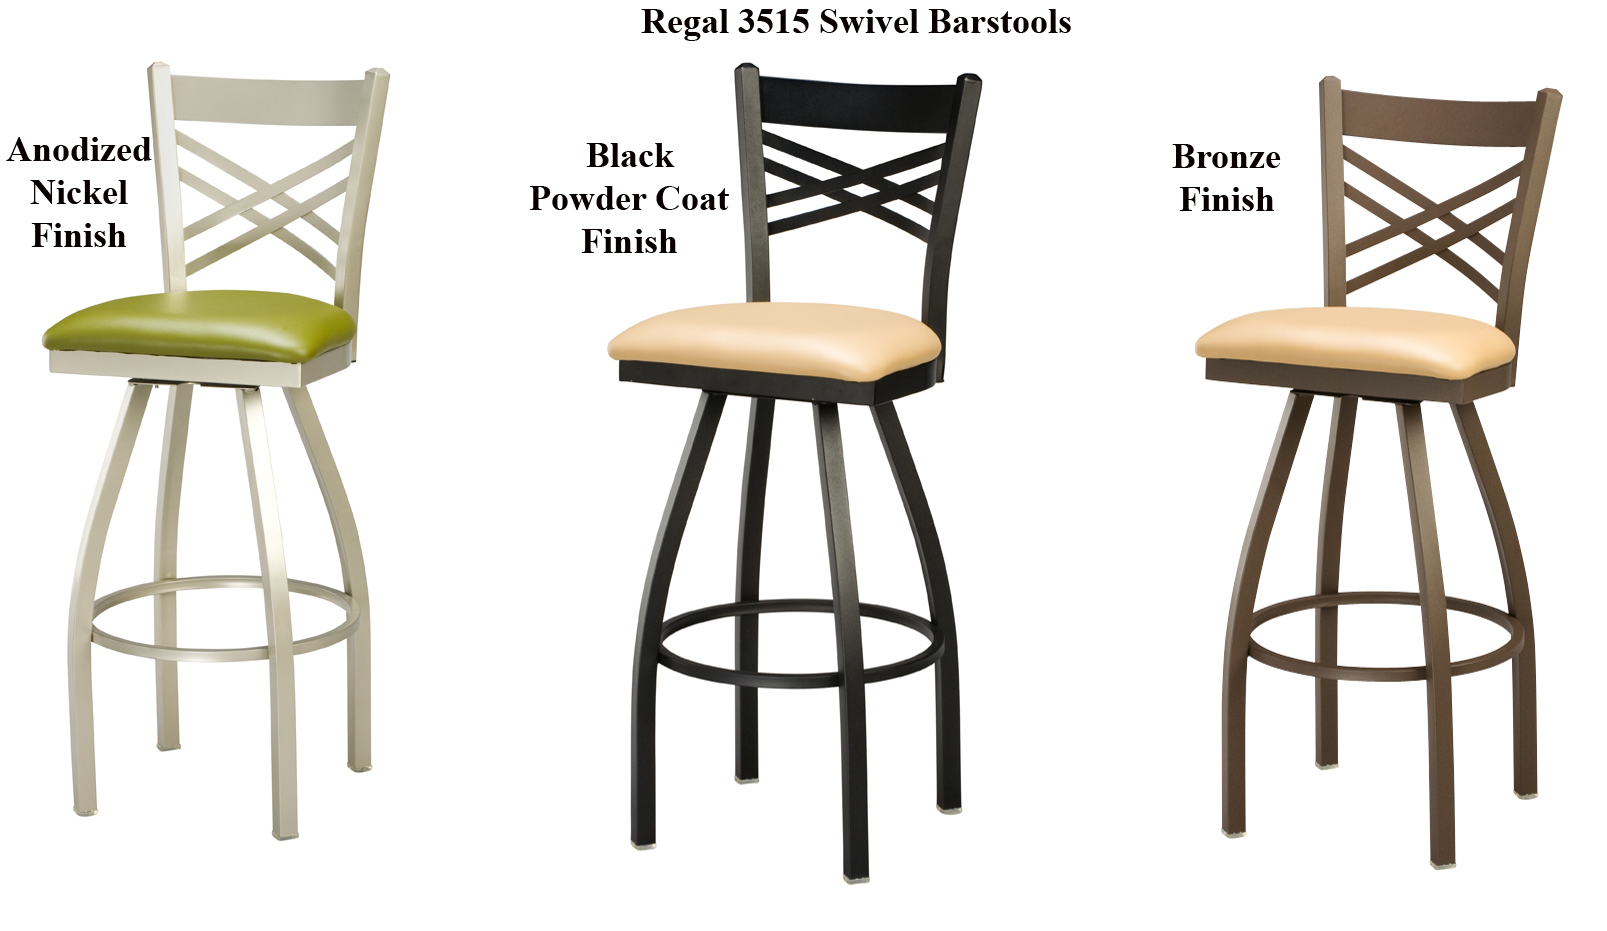 swivel chair regal high chairs in egypt 3515 barstool steel frame metal barstools